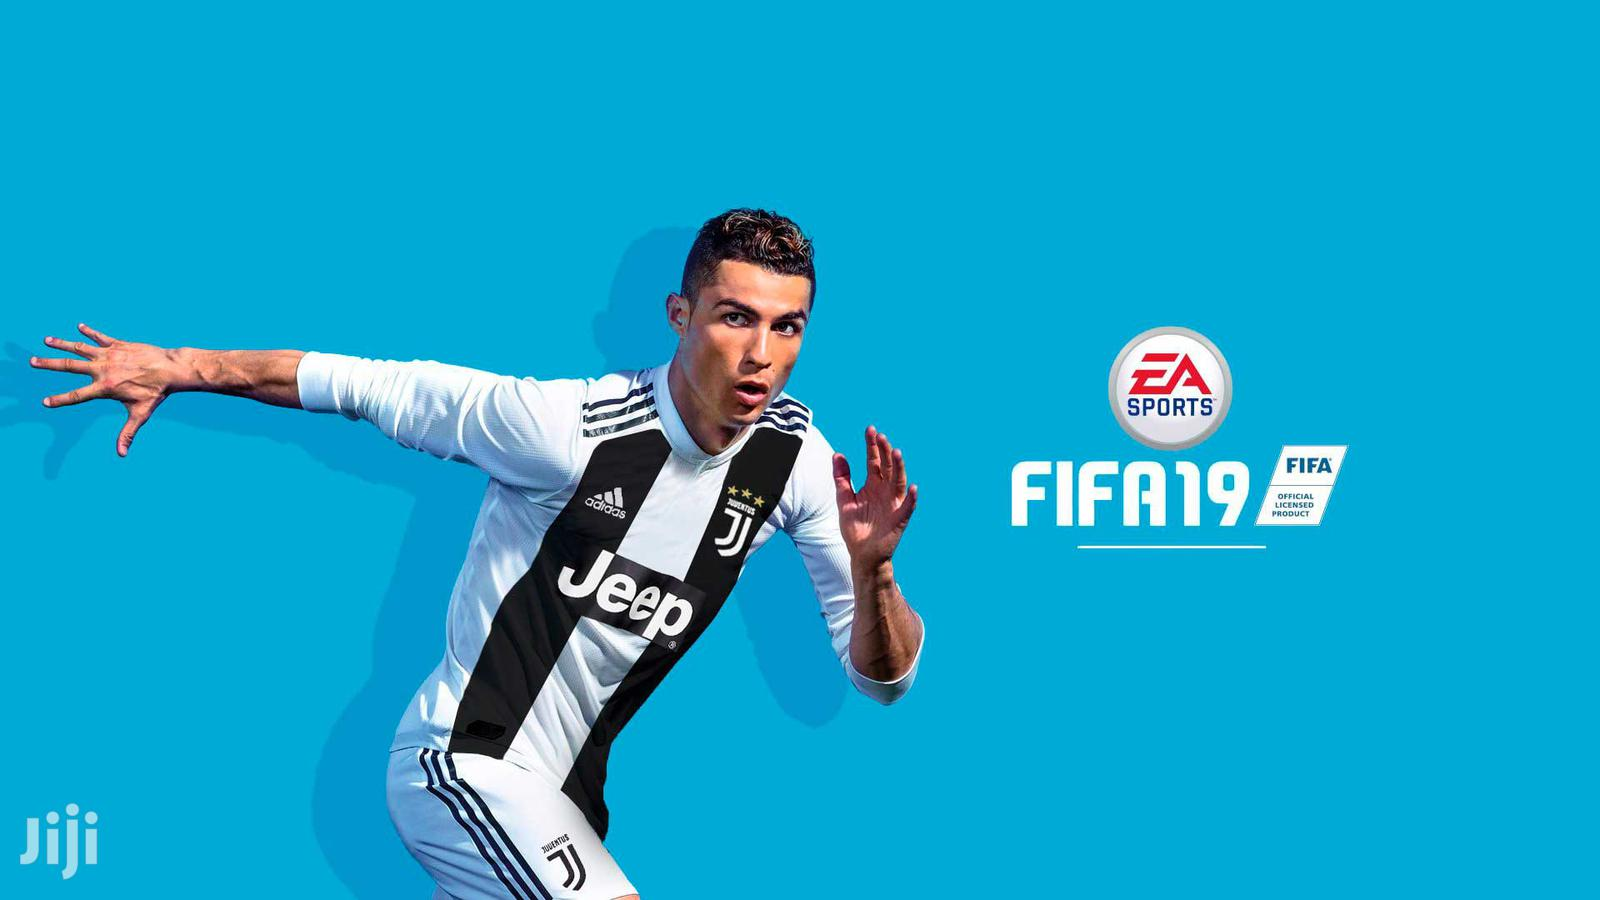 FIFA 19 2018 Full Version And Crack